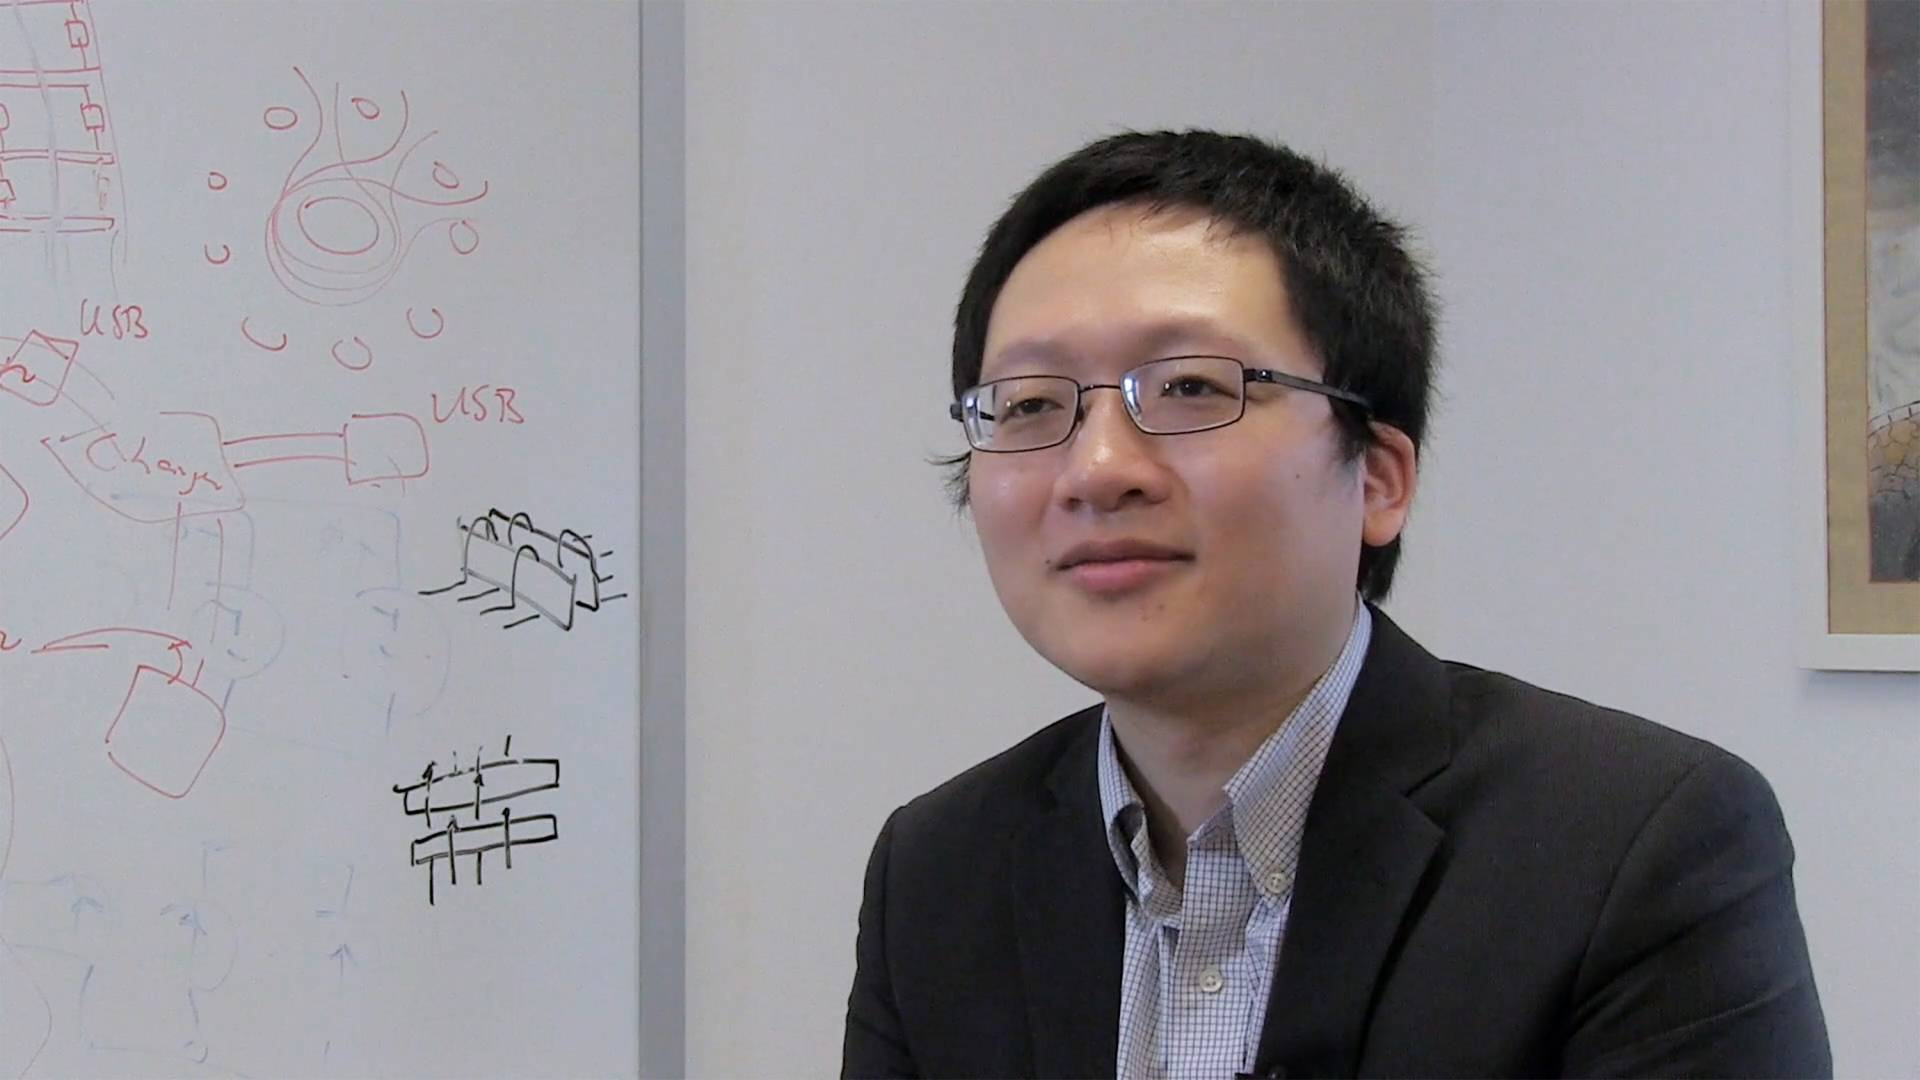 Minjie Chen discusses his research